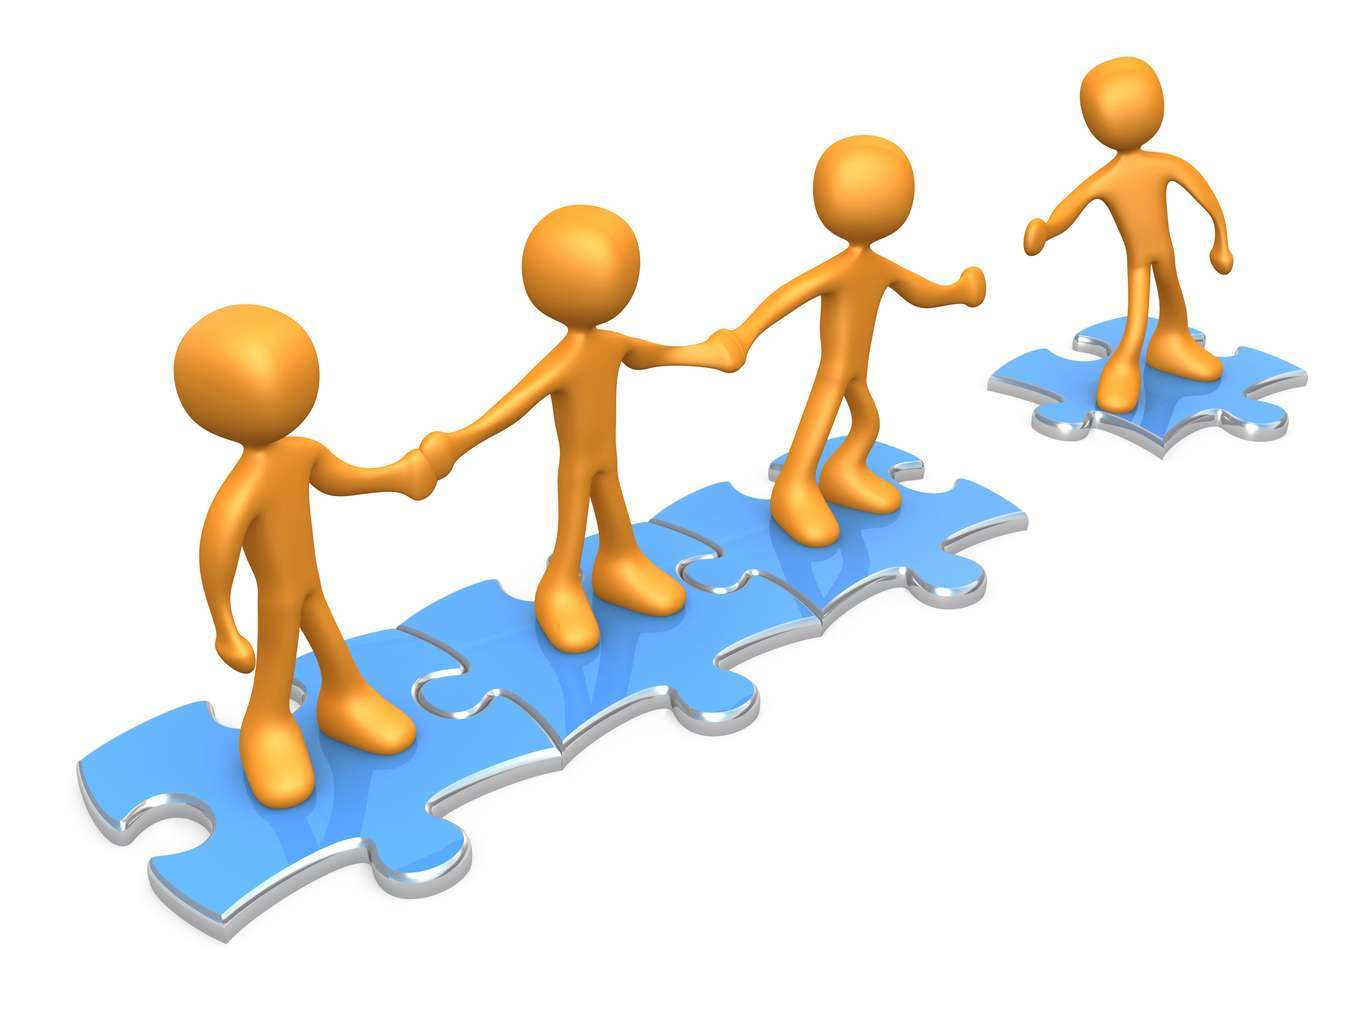 Teamwork clipart person connected. Team of three orange